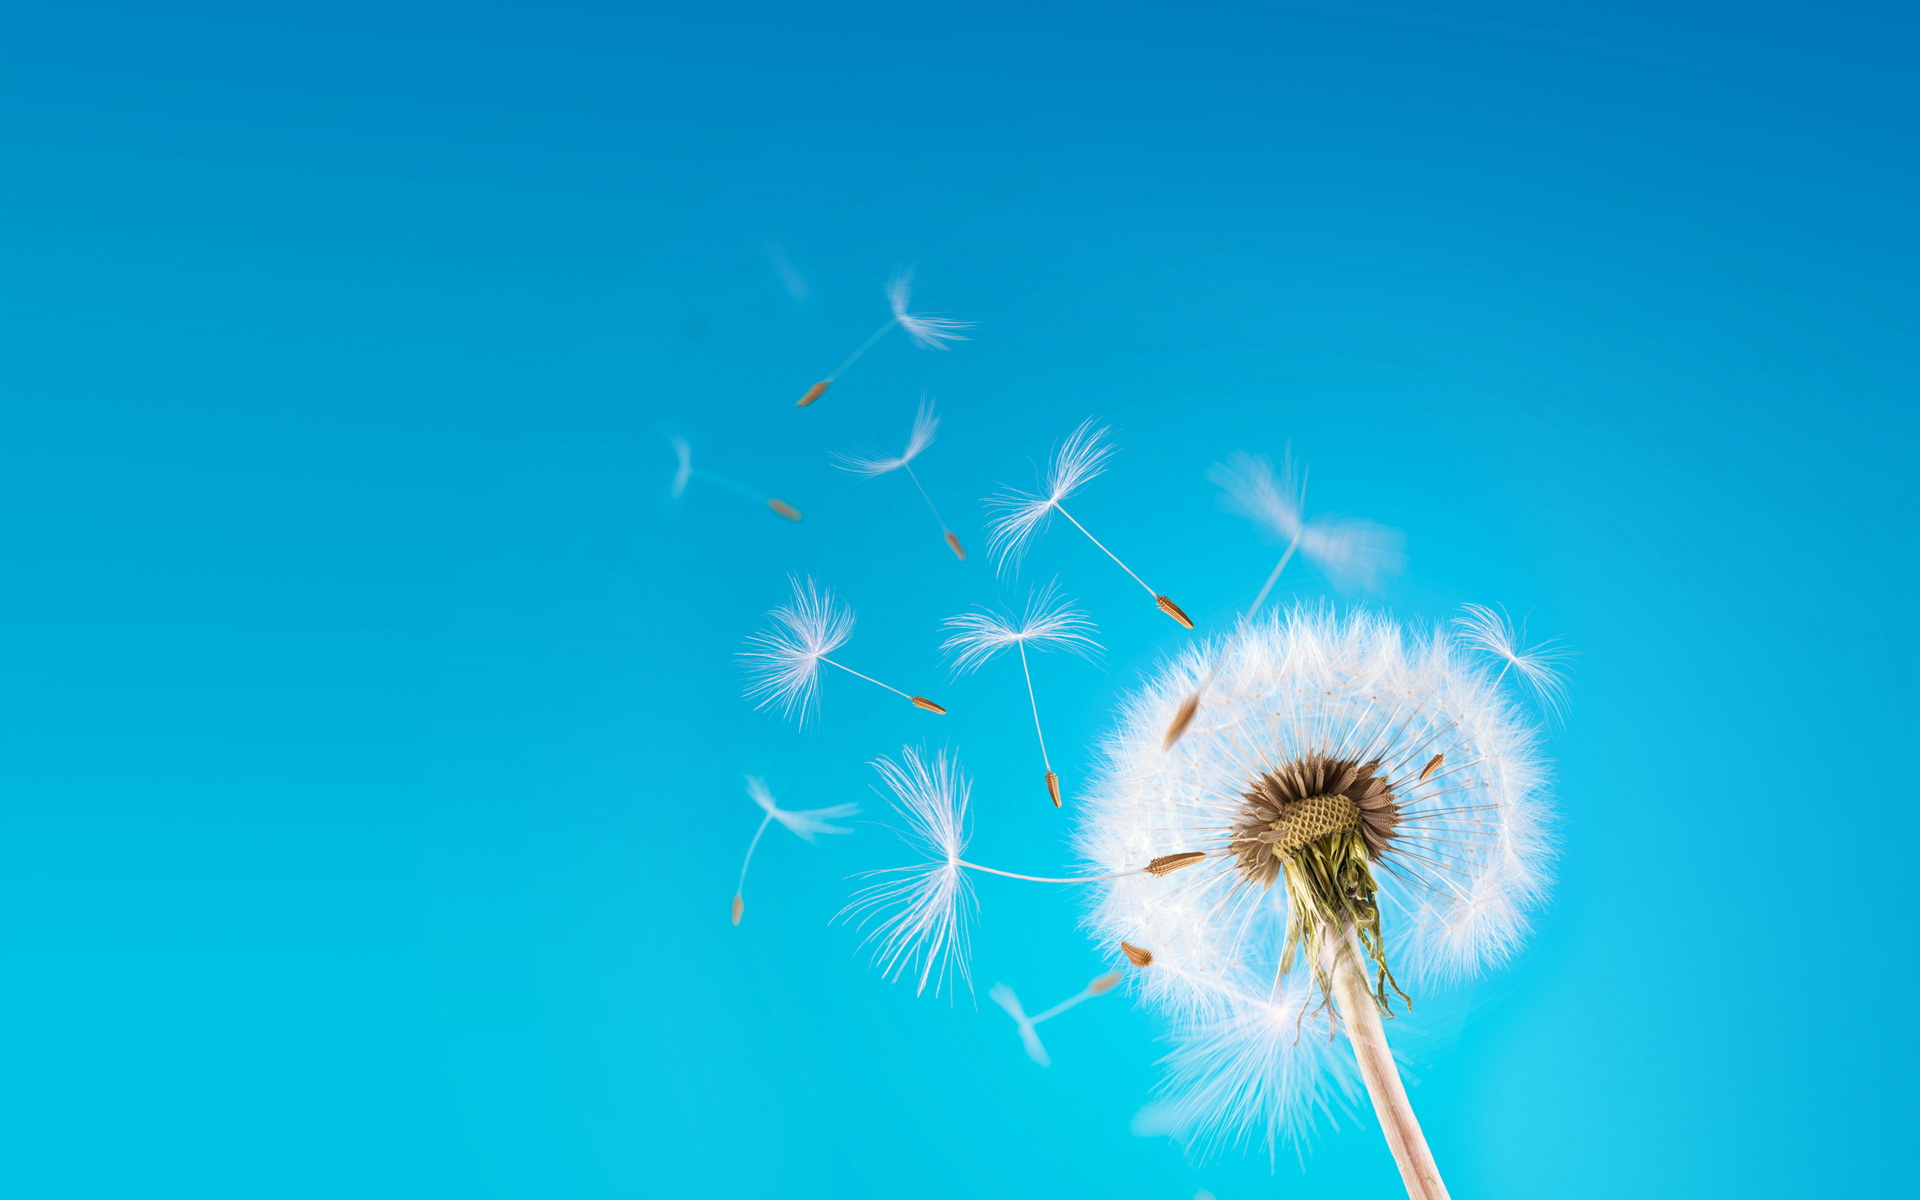 Flying Dandelion Seeds Wallpaper